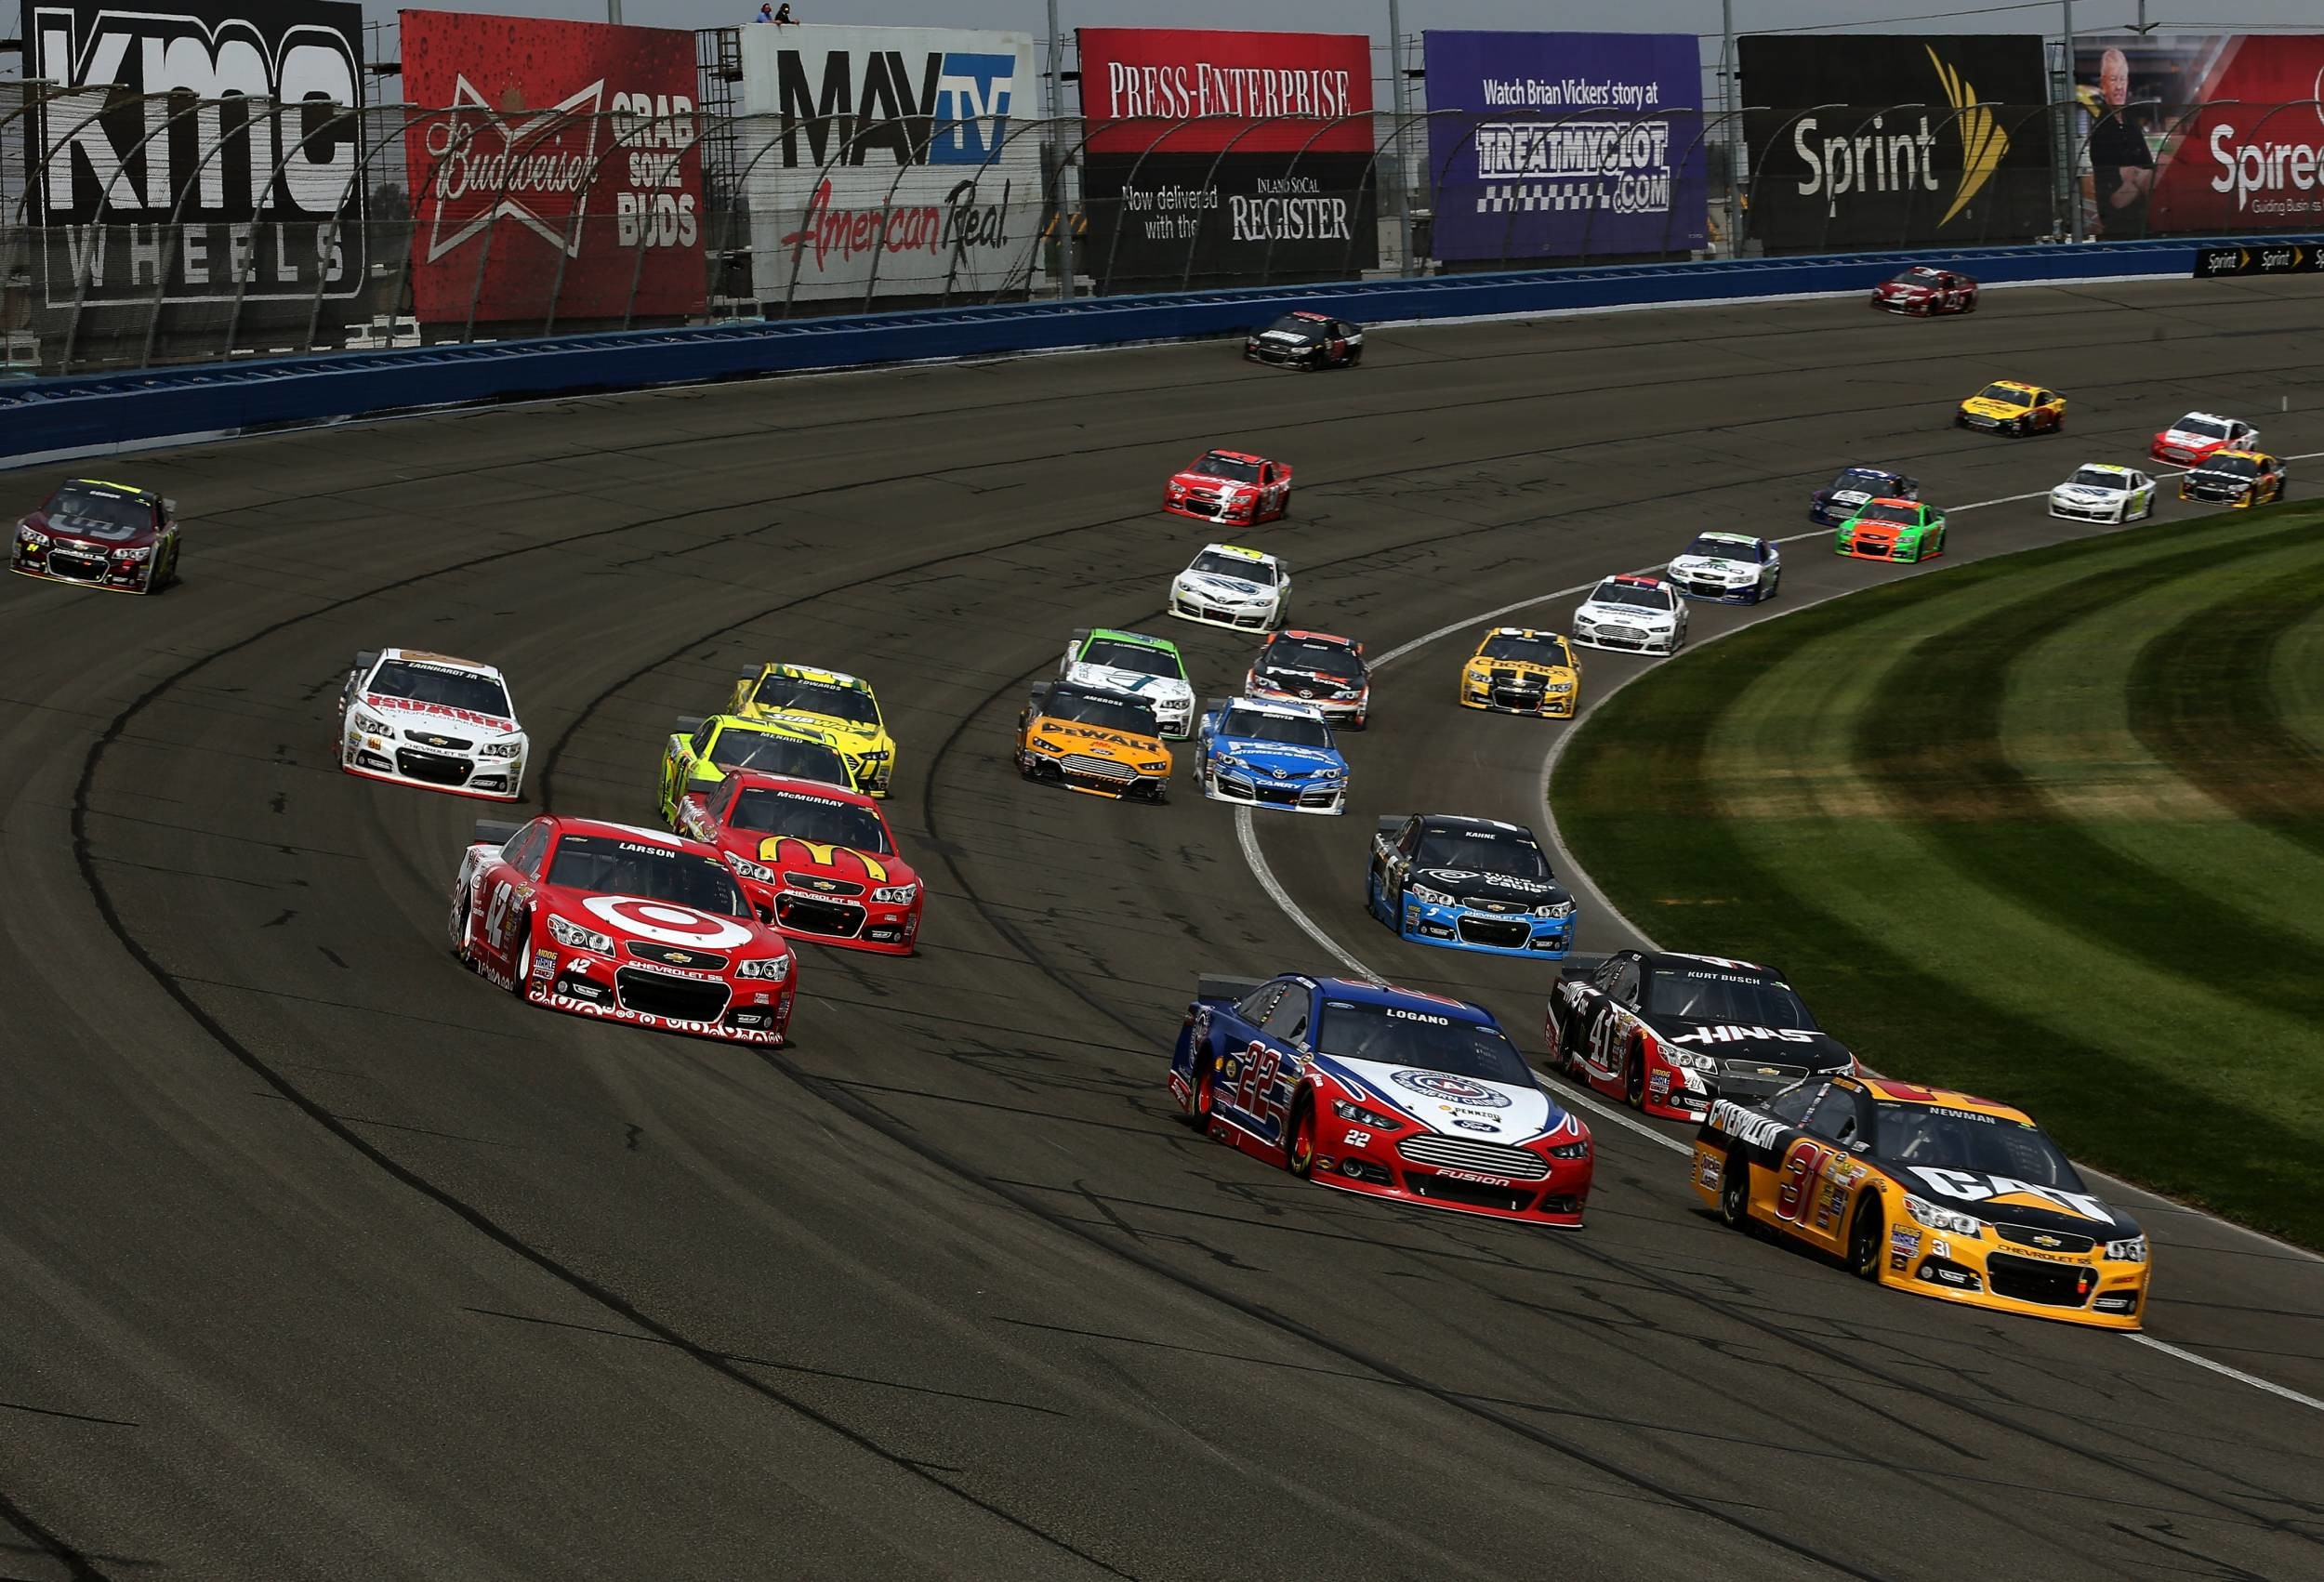 Res: 2500x1702, Nascar – Background download free for PC & Mac, Laptop, Tablet, Mobile Phone